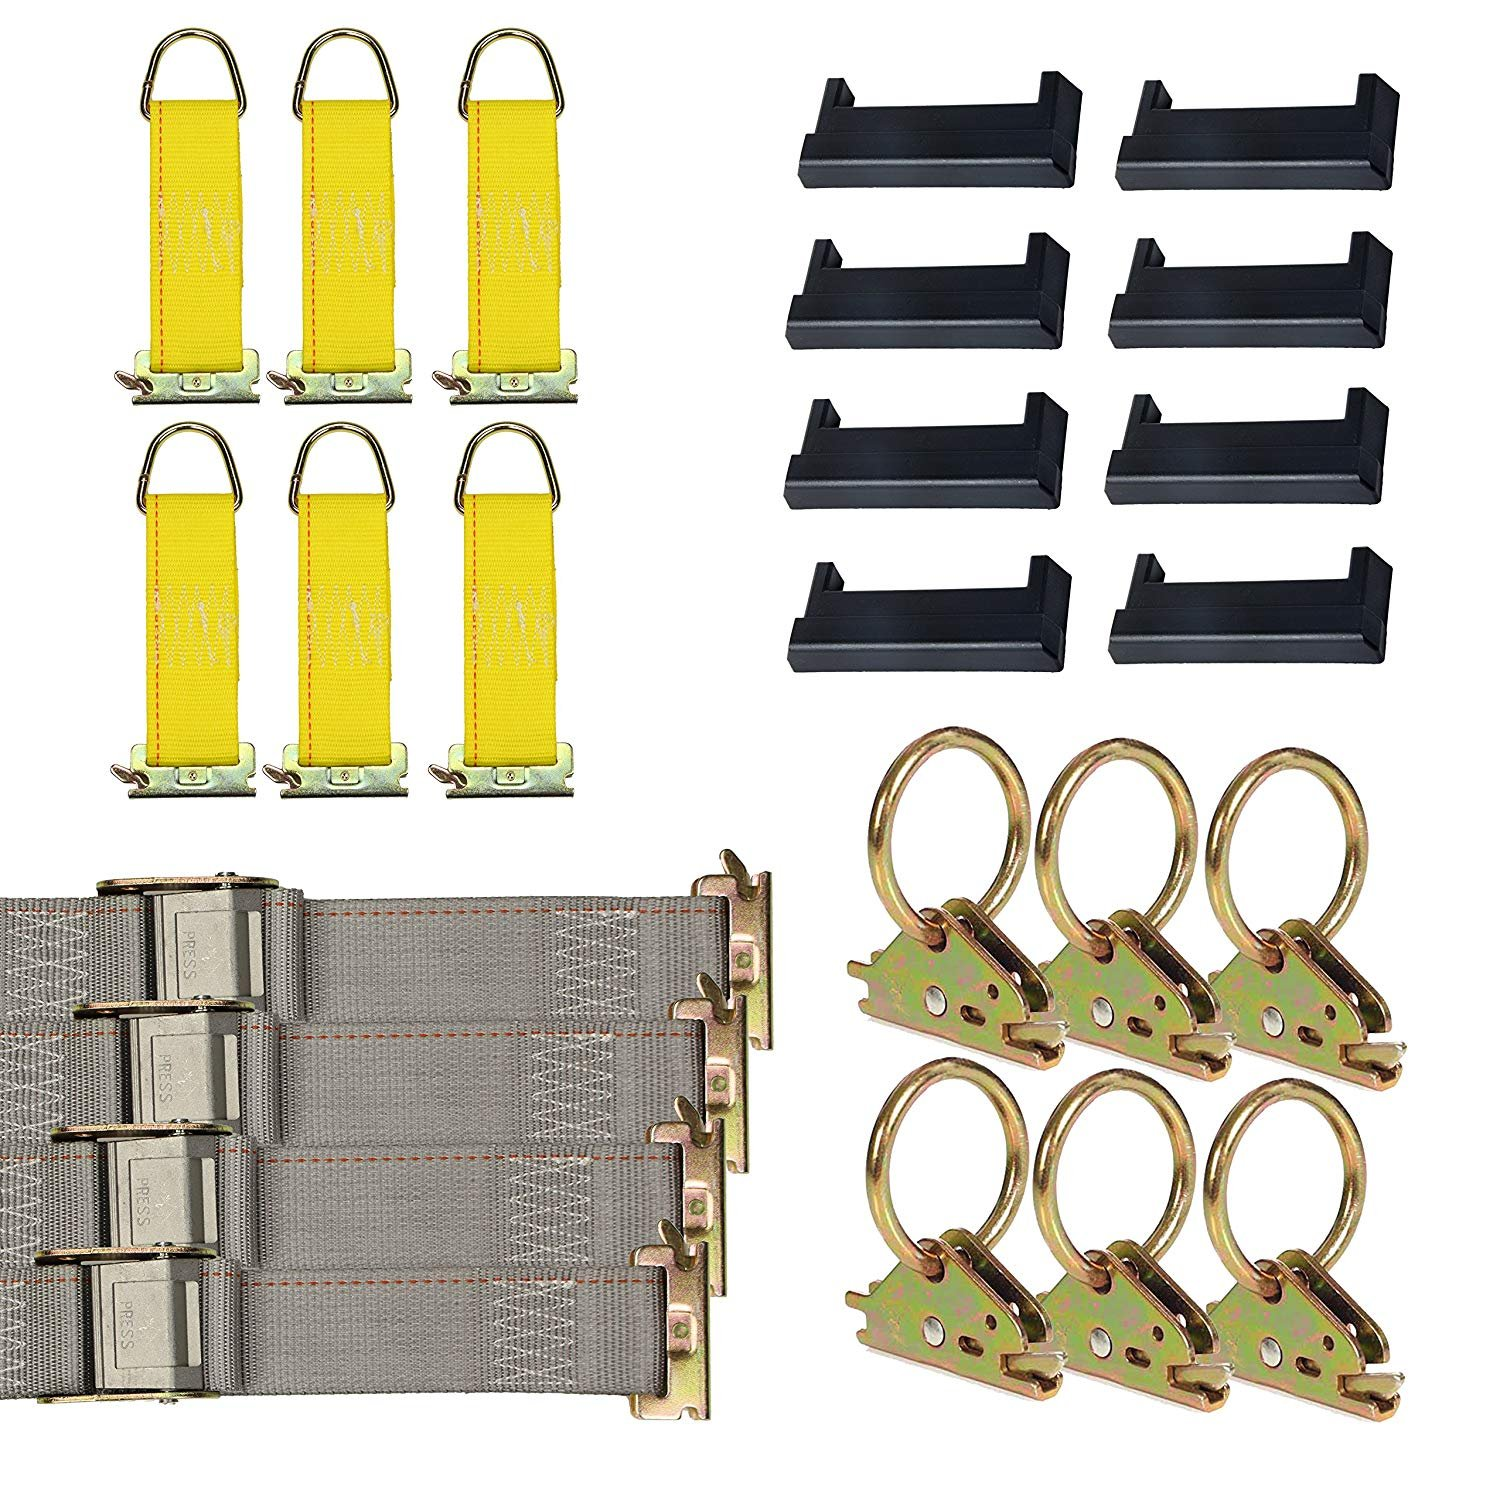 8 O Rings E-Track Tie-Down KIT 4 Galvanized 5 Horizontal E Track Rails Cargo Securement 8 End Caps 8 Rope Tie-Offs Trailer Accessories